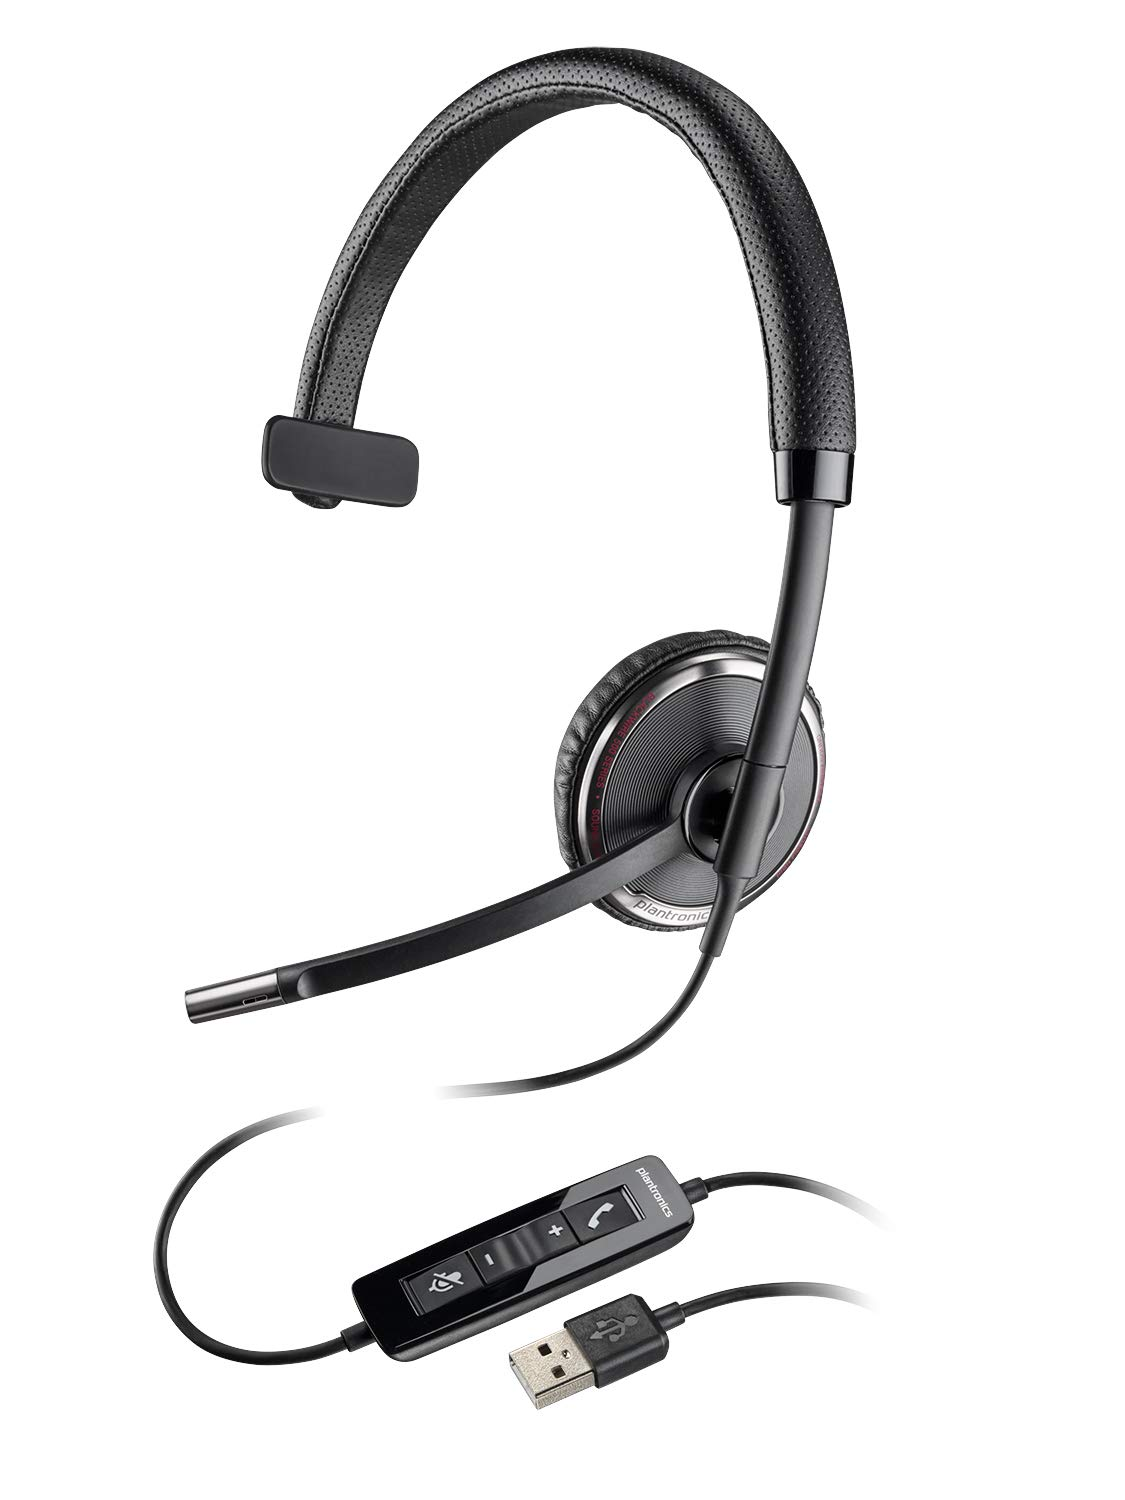 Plantronics Blackwire C510-M Monaural Over-the-Head Corded Headset, Microsoft Optimized